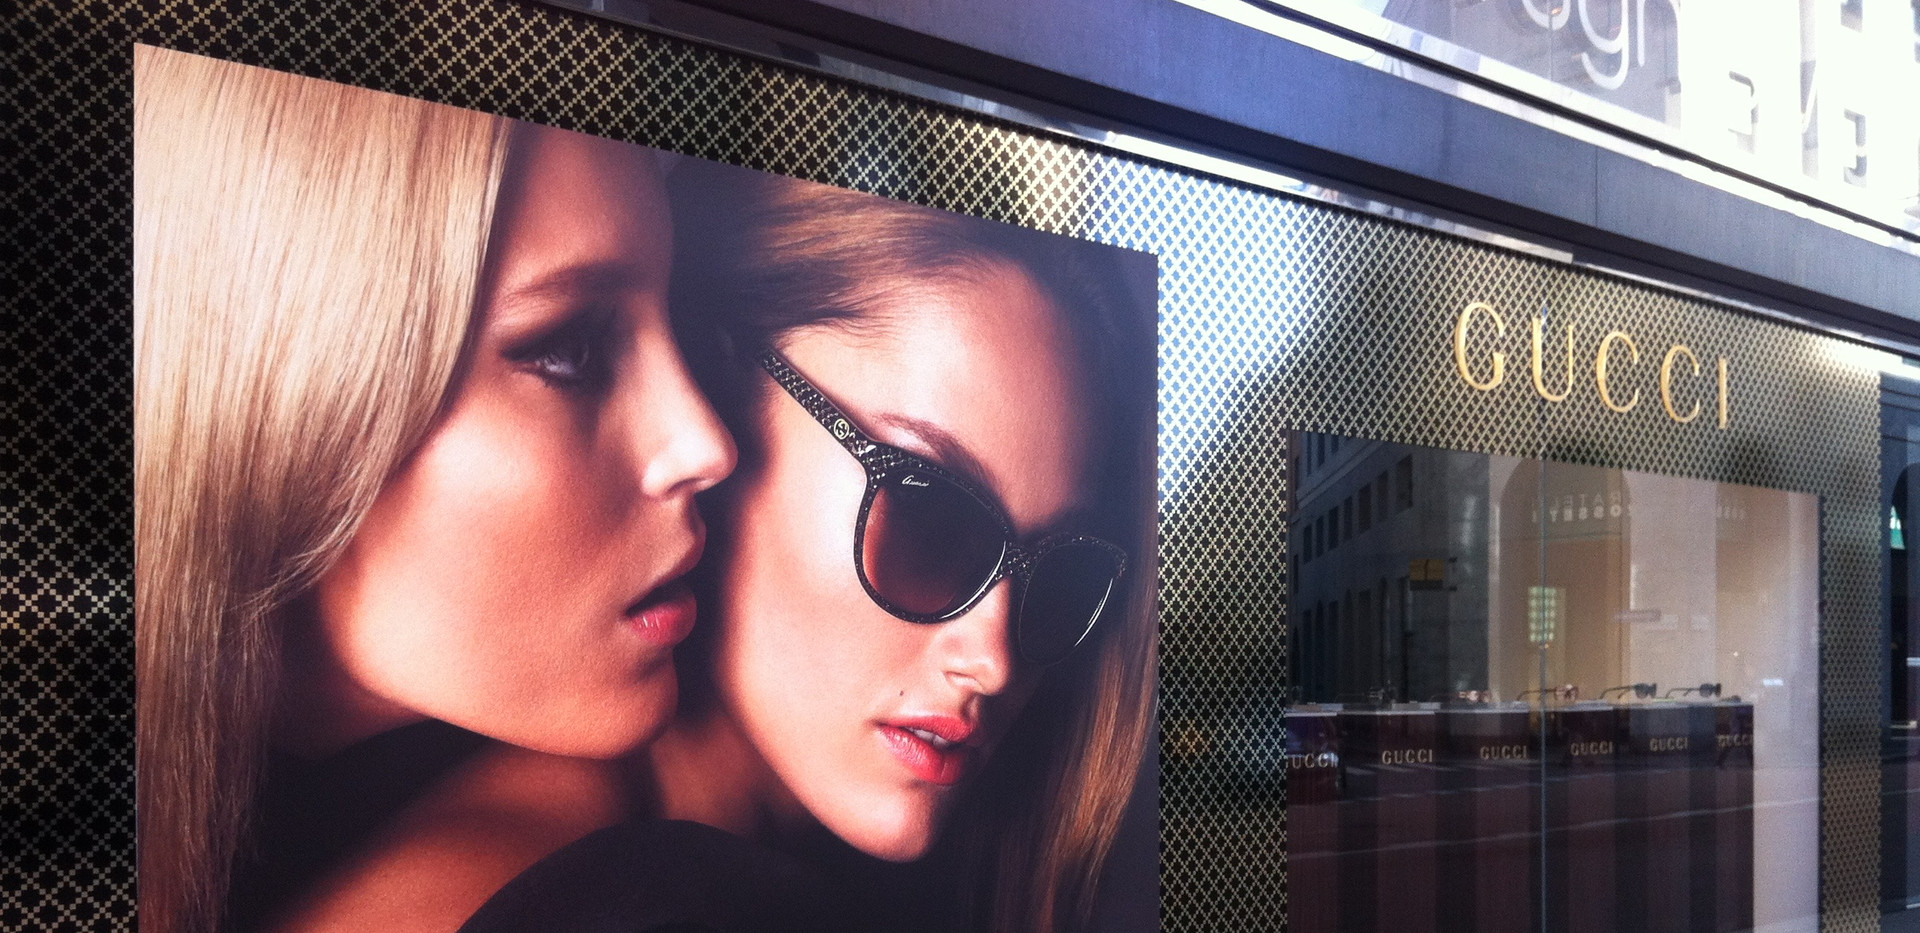 Customize your store windows